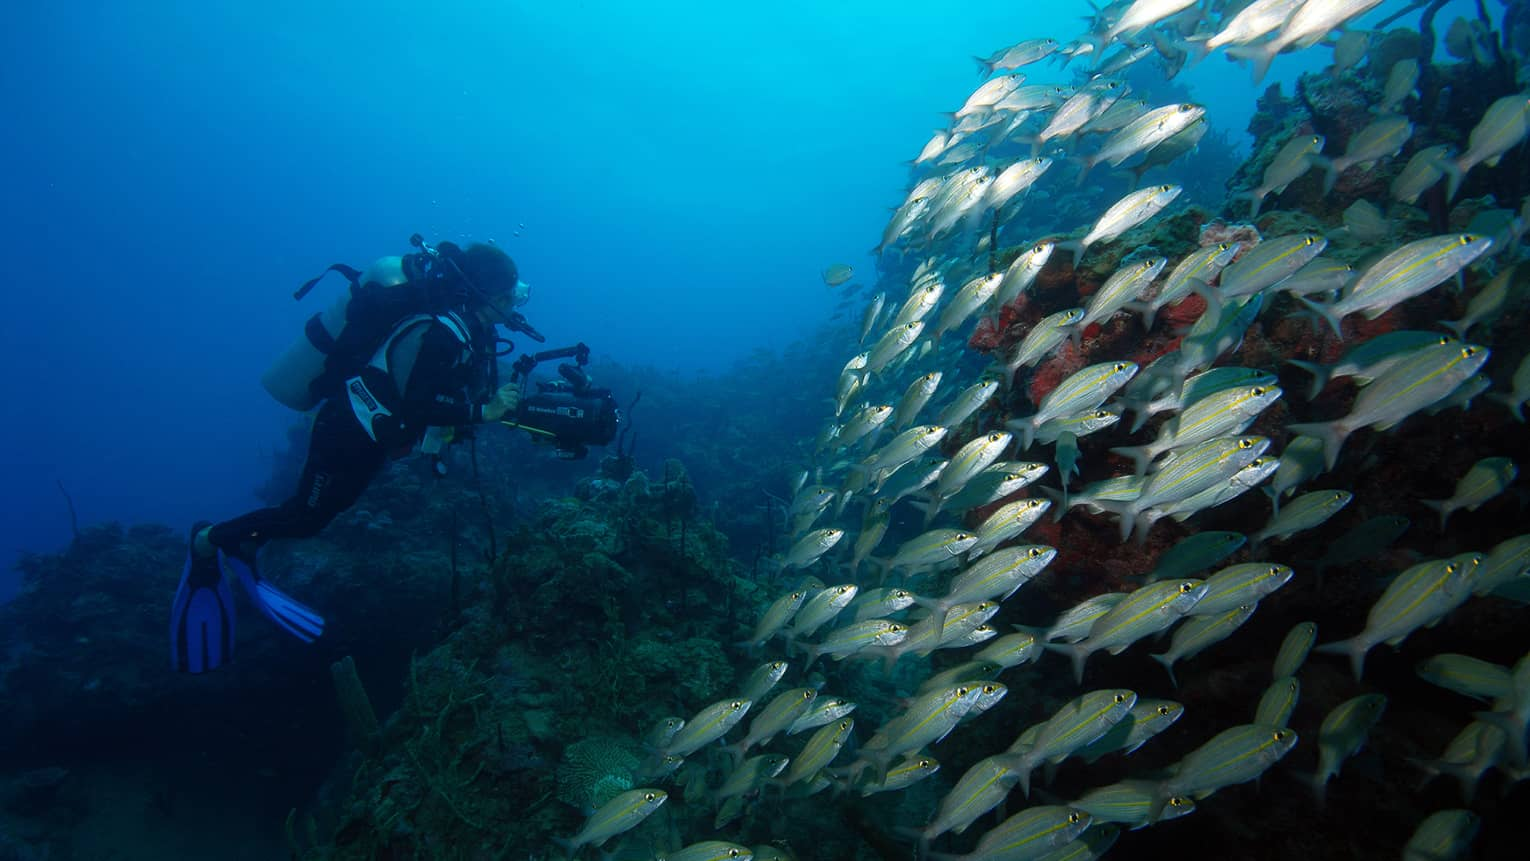 Scuba diver underwater by large school of tropical fish